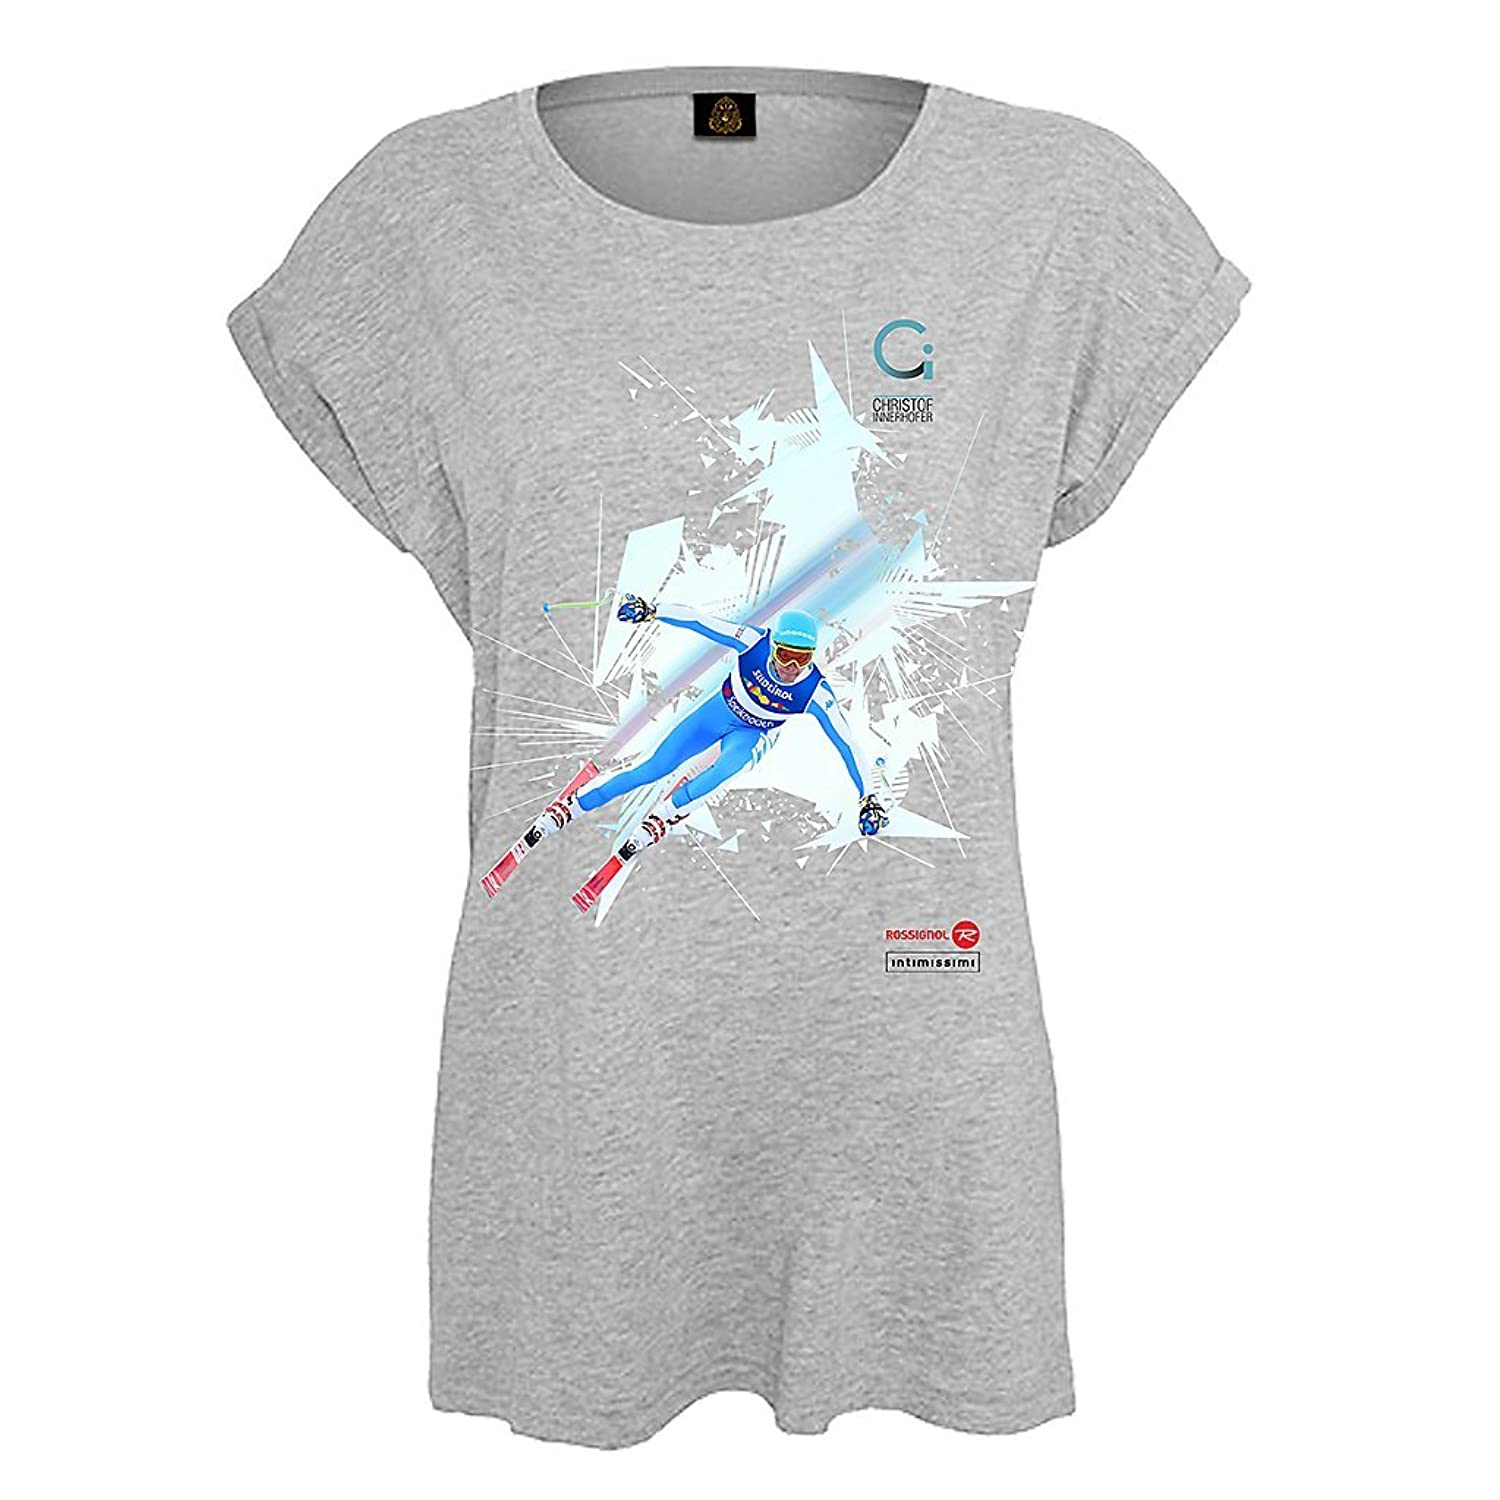 "Customized T-Shirt, Design ""CHRISTOF INNERHOFER-SKI-Women T-Shirt"" gray (V.I.P. Pictures World by CRISTALICA)"